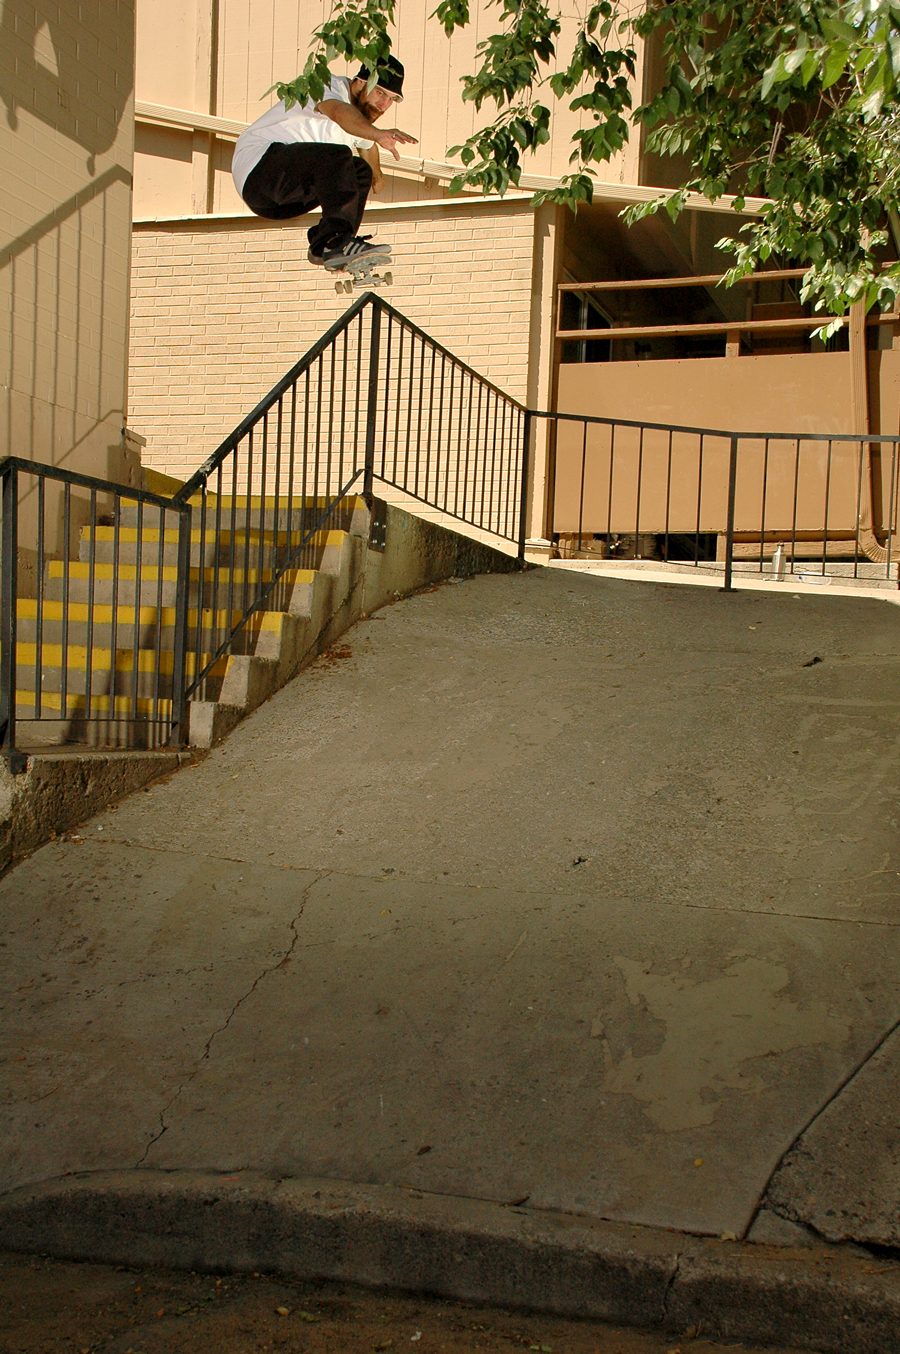 Shaun D apartment complex ollie Haman photo